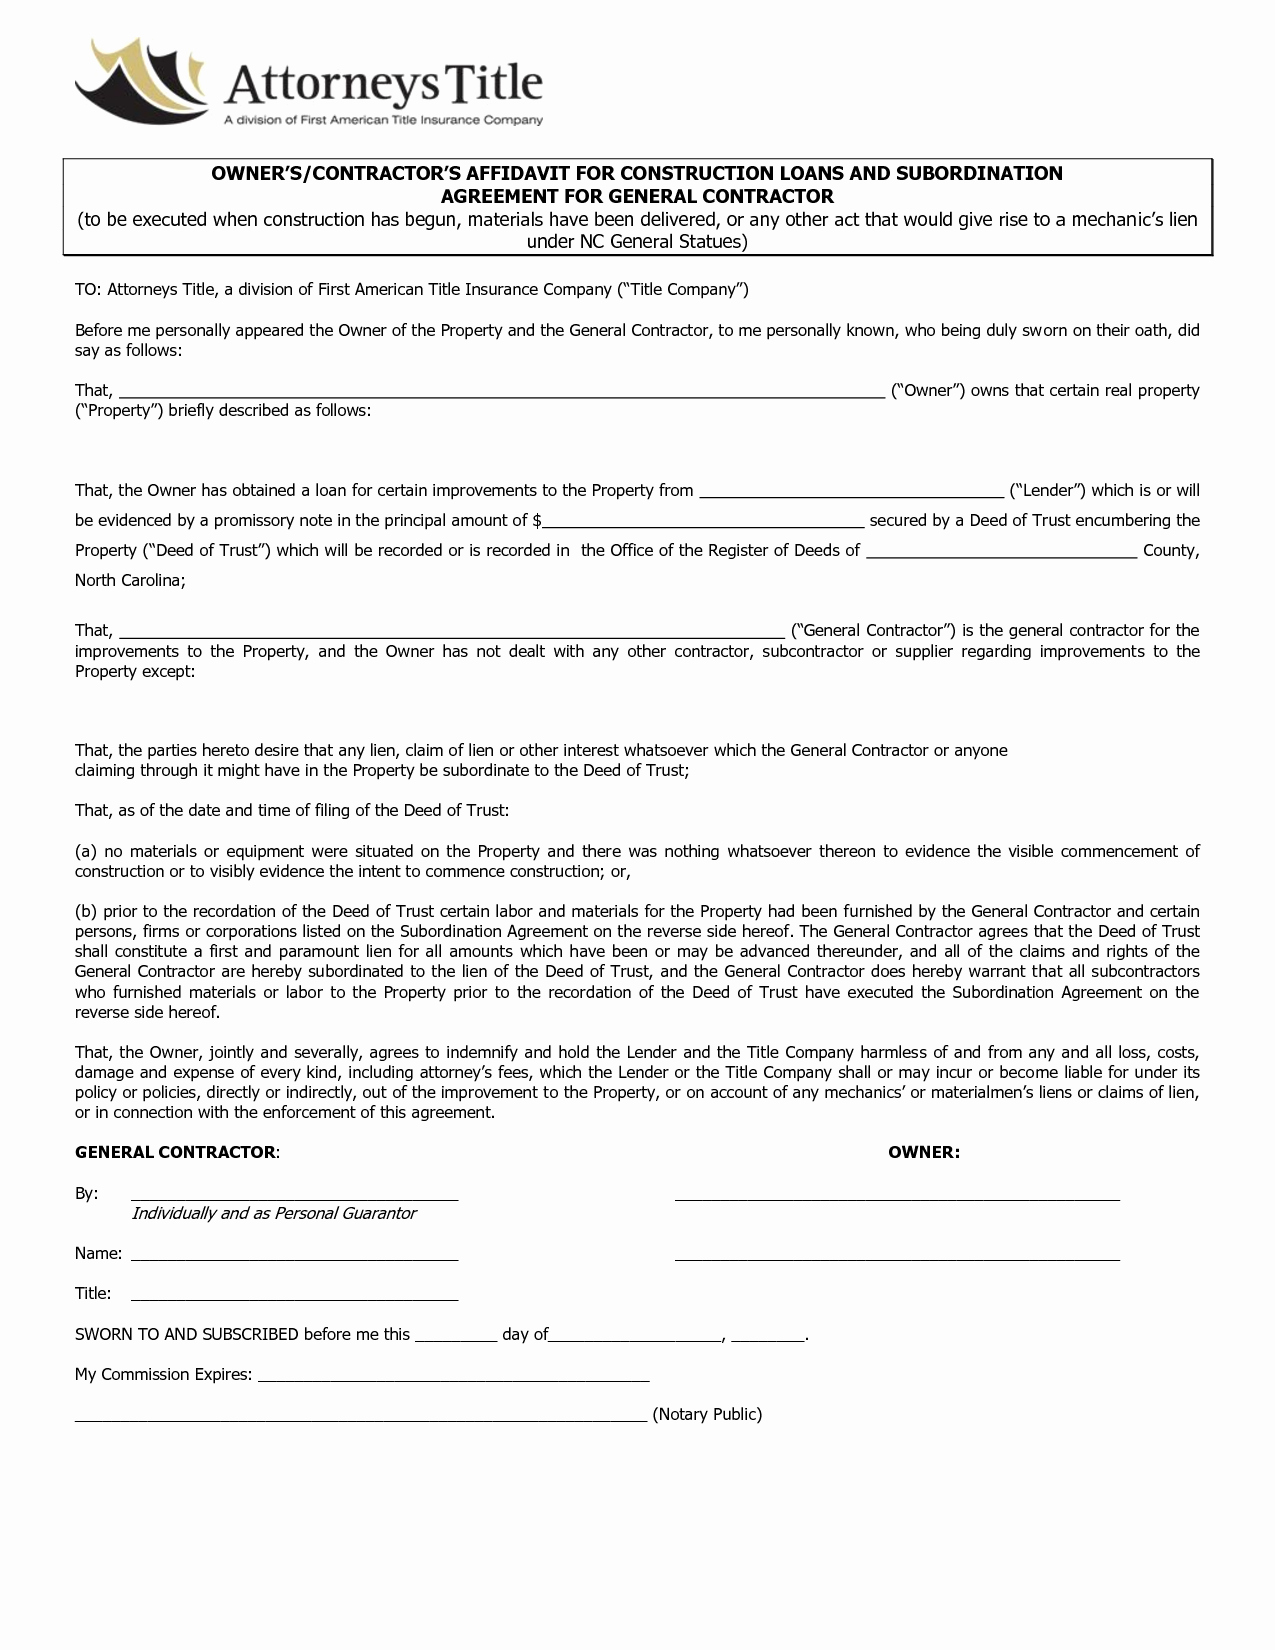 General Contractor Sample Contract New Agreement Template Category Page 3 Efoza